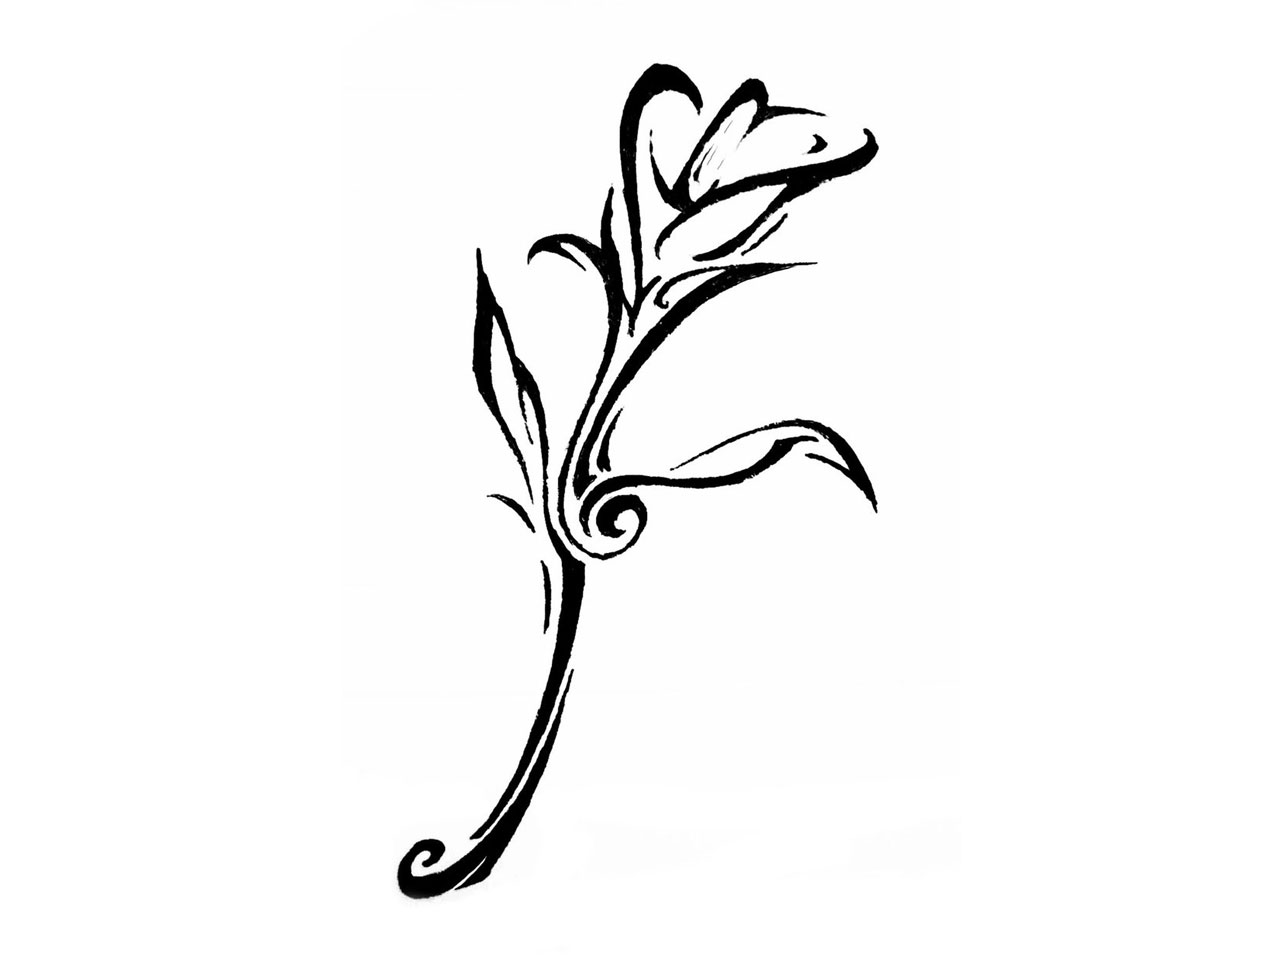 Flower meanings lily - Tribal Lily Tattoo Designs